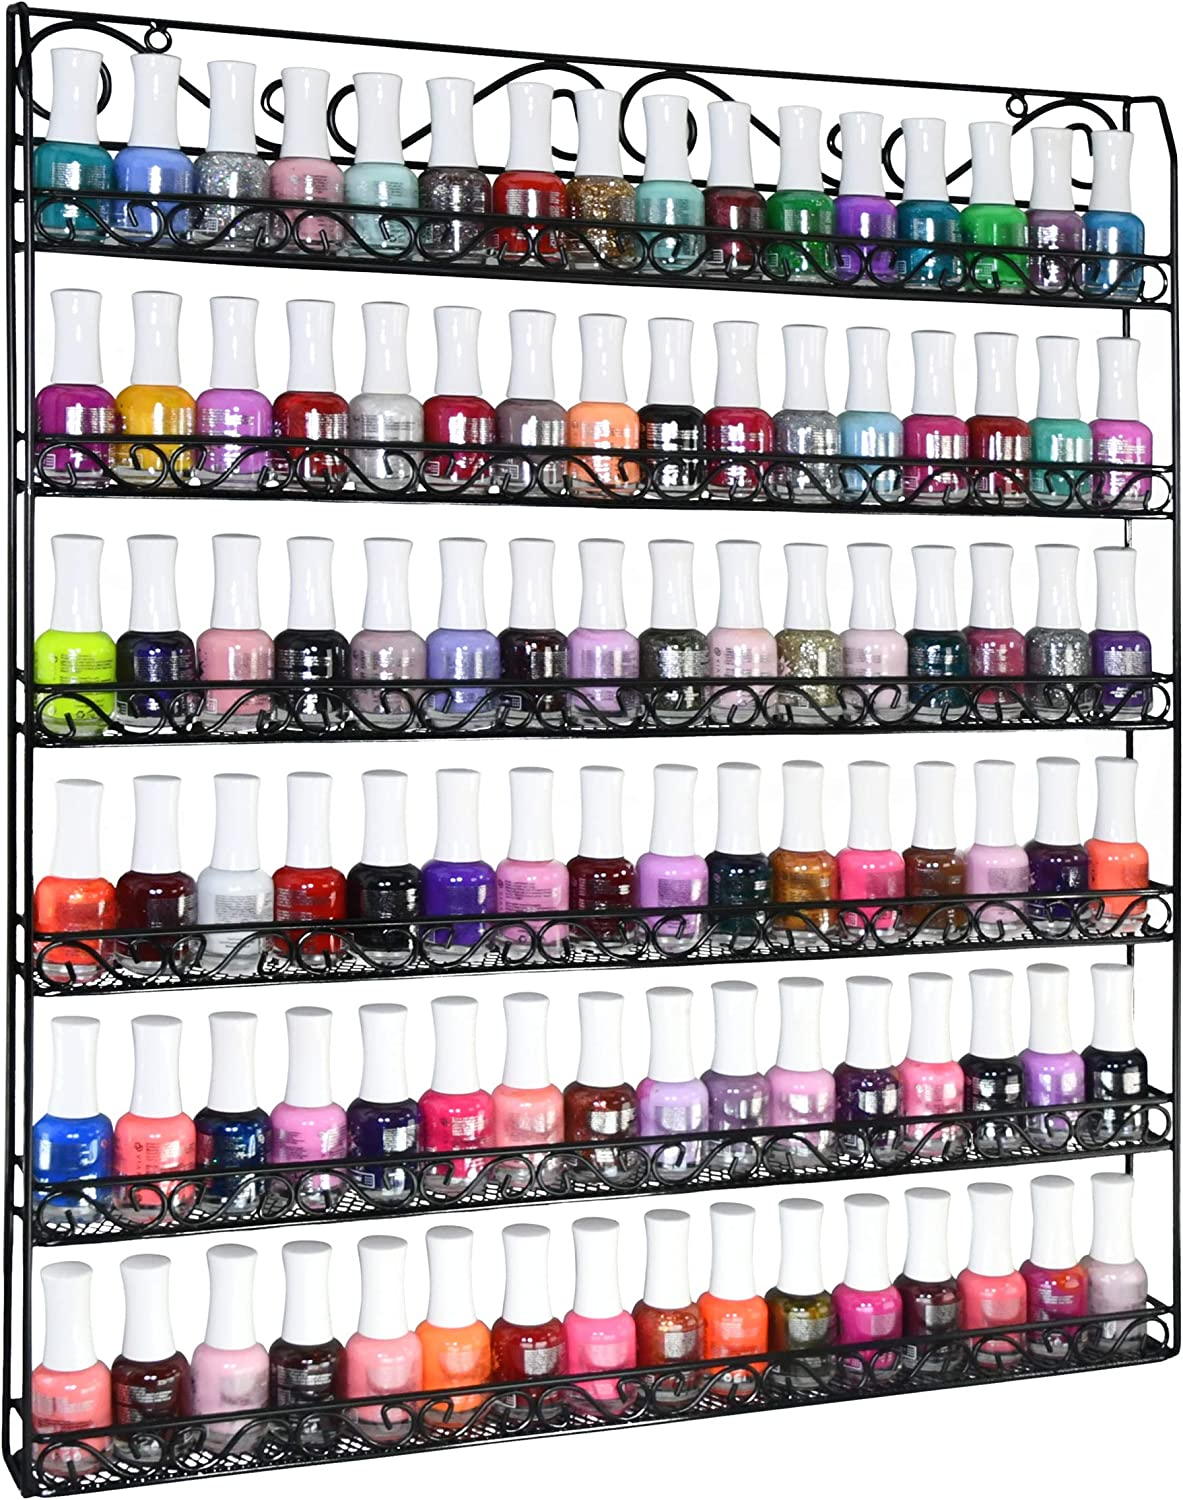 AMT 6 TIER Metal Nail Polish Racks- Up To 108 BOTTLES, Clear Nail Polish Display for The Wall, Young Living Essential Oils Organizer for Home Salon Business Spa (108 Bottles - Black)